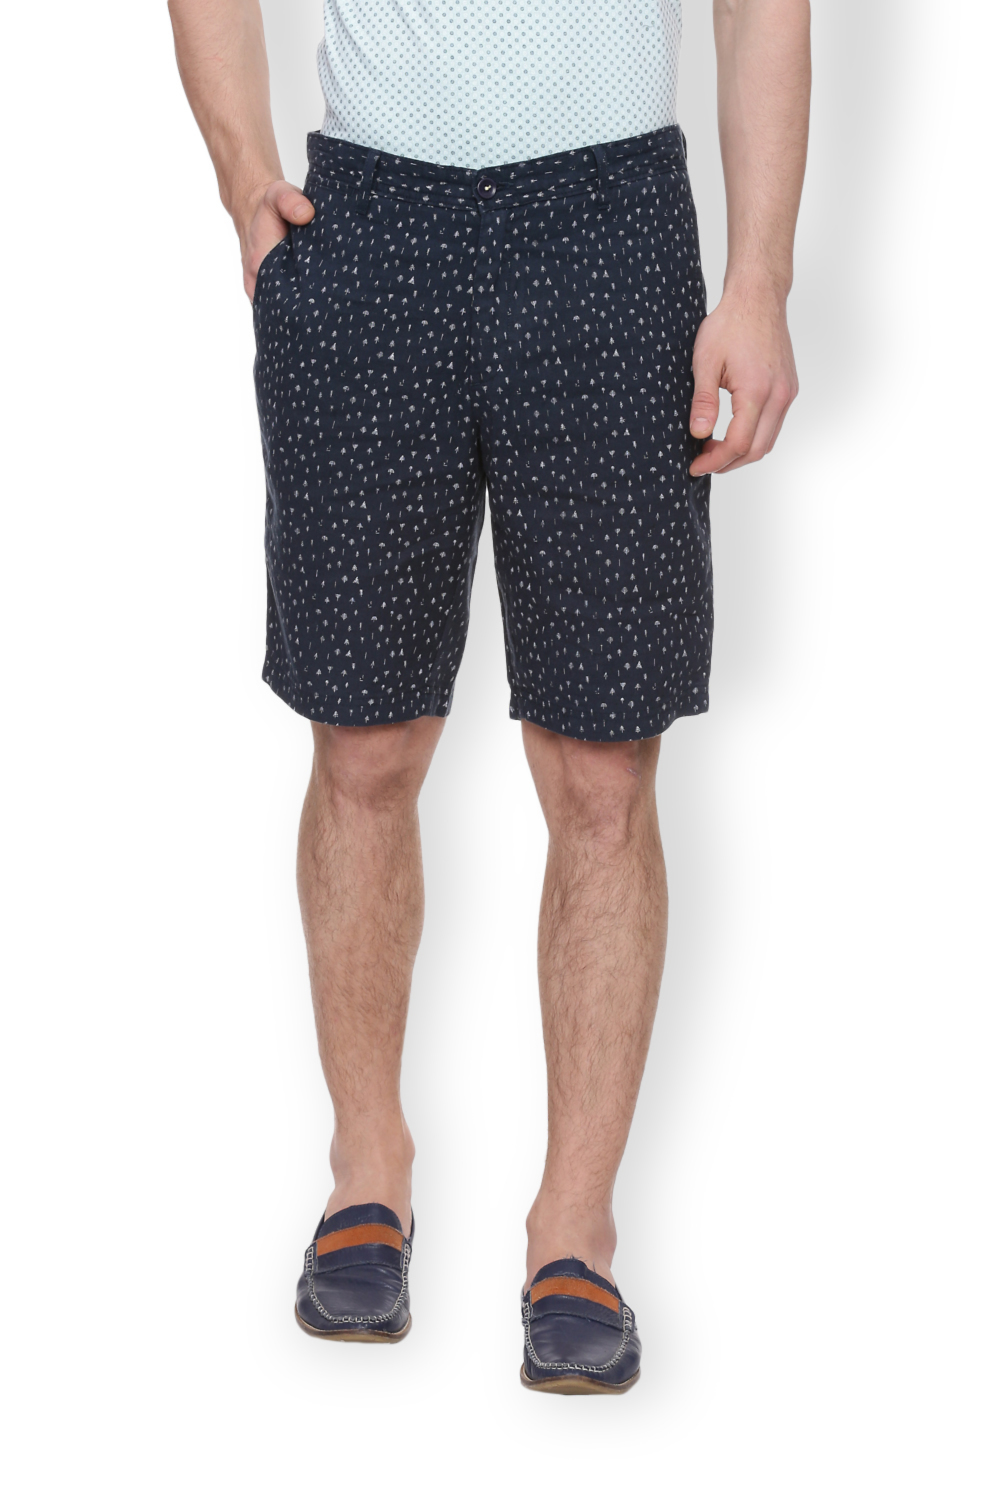 2e4fb6dd88 Van Heusen Sport Shorts, Van Heusen Blue Shorts for Men at  Vanheusenindia.com